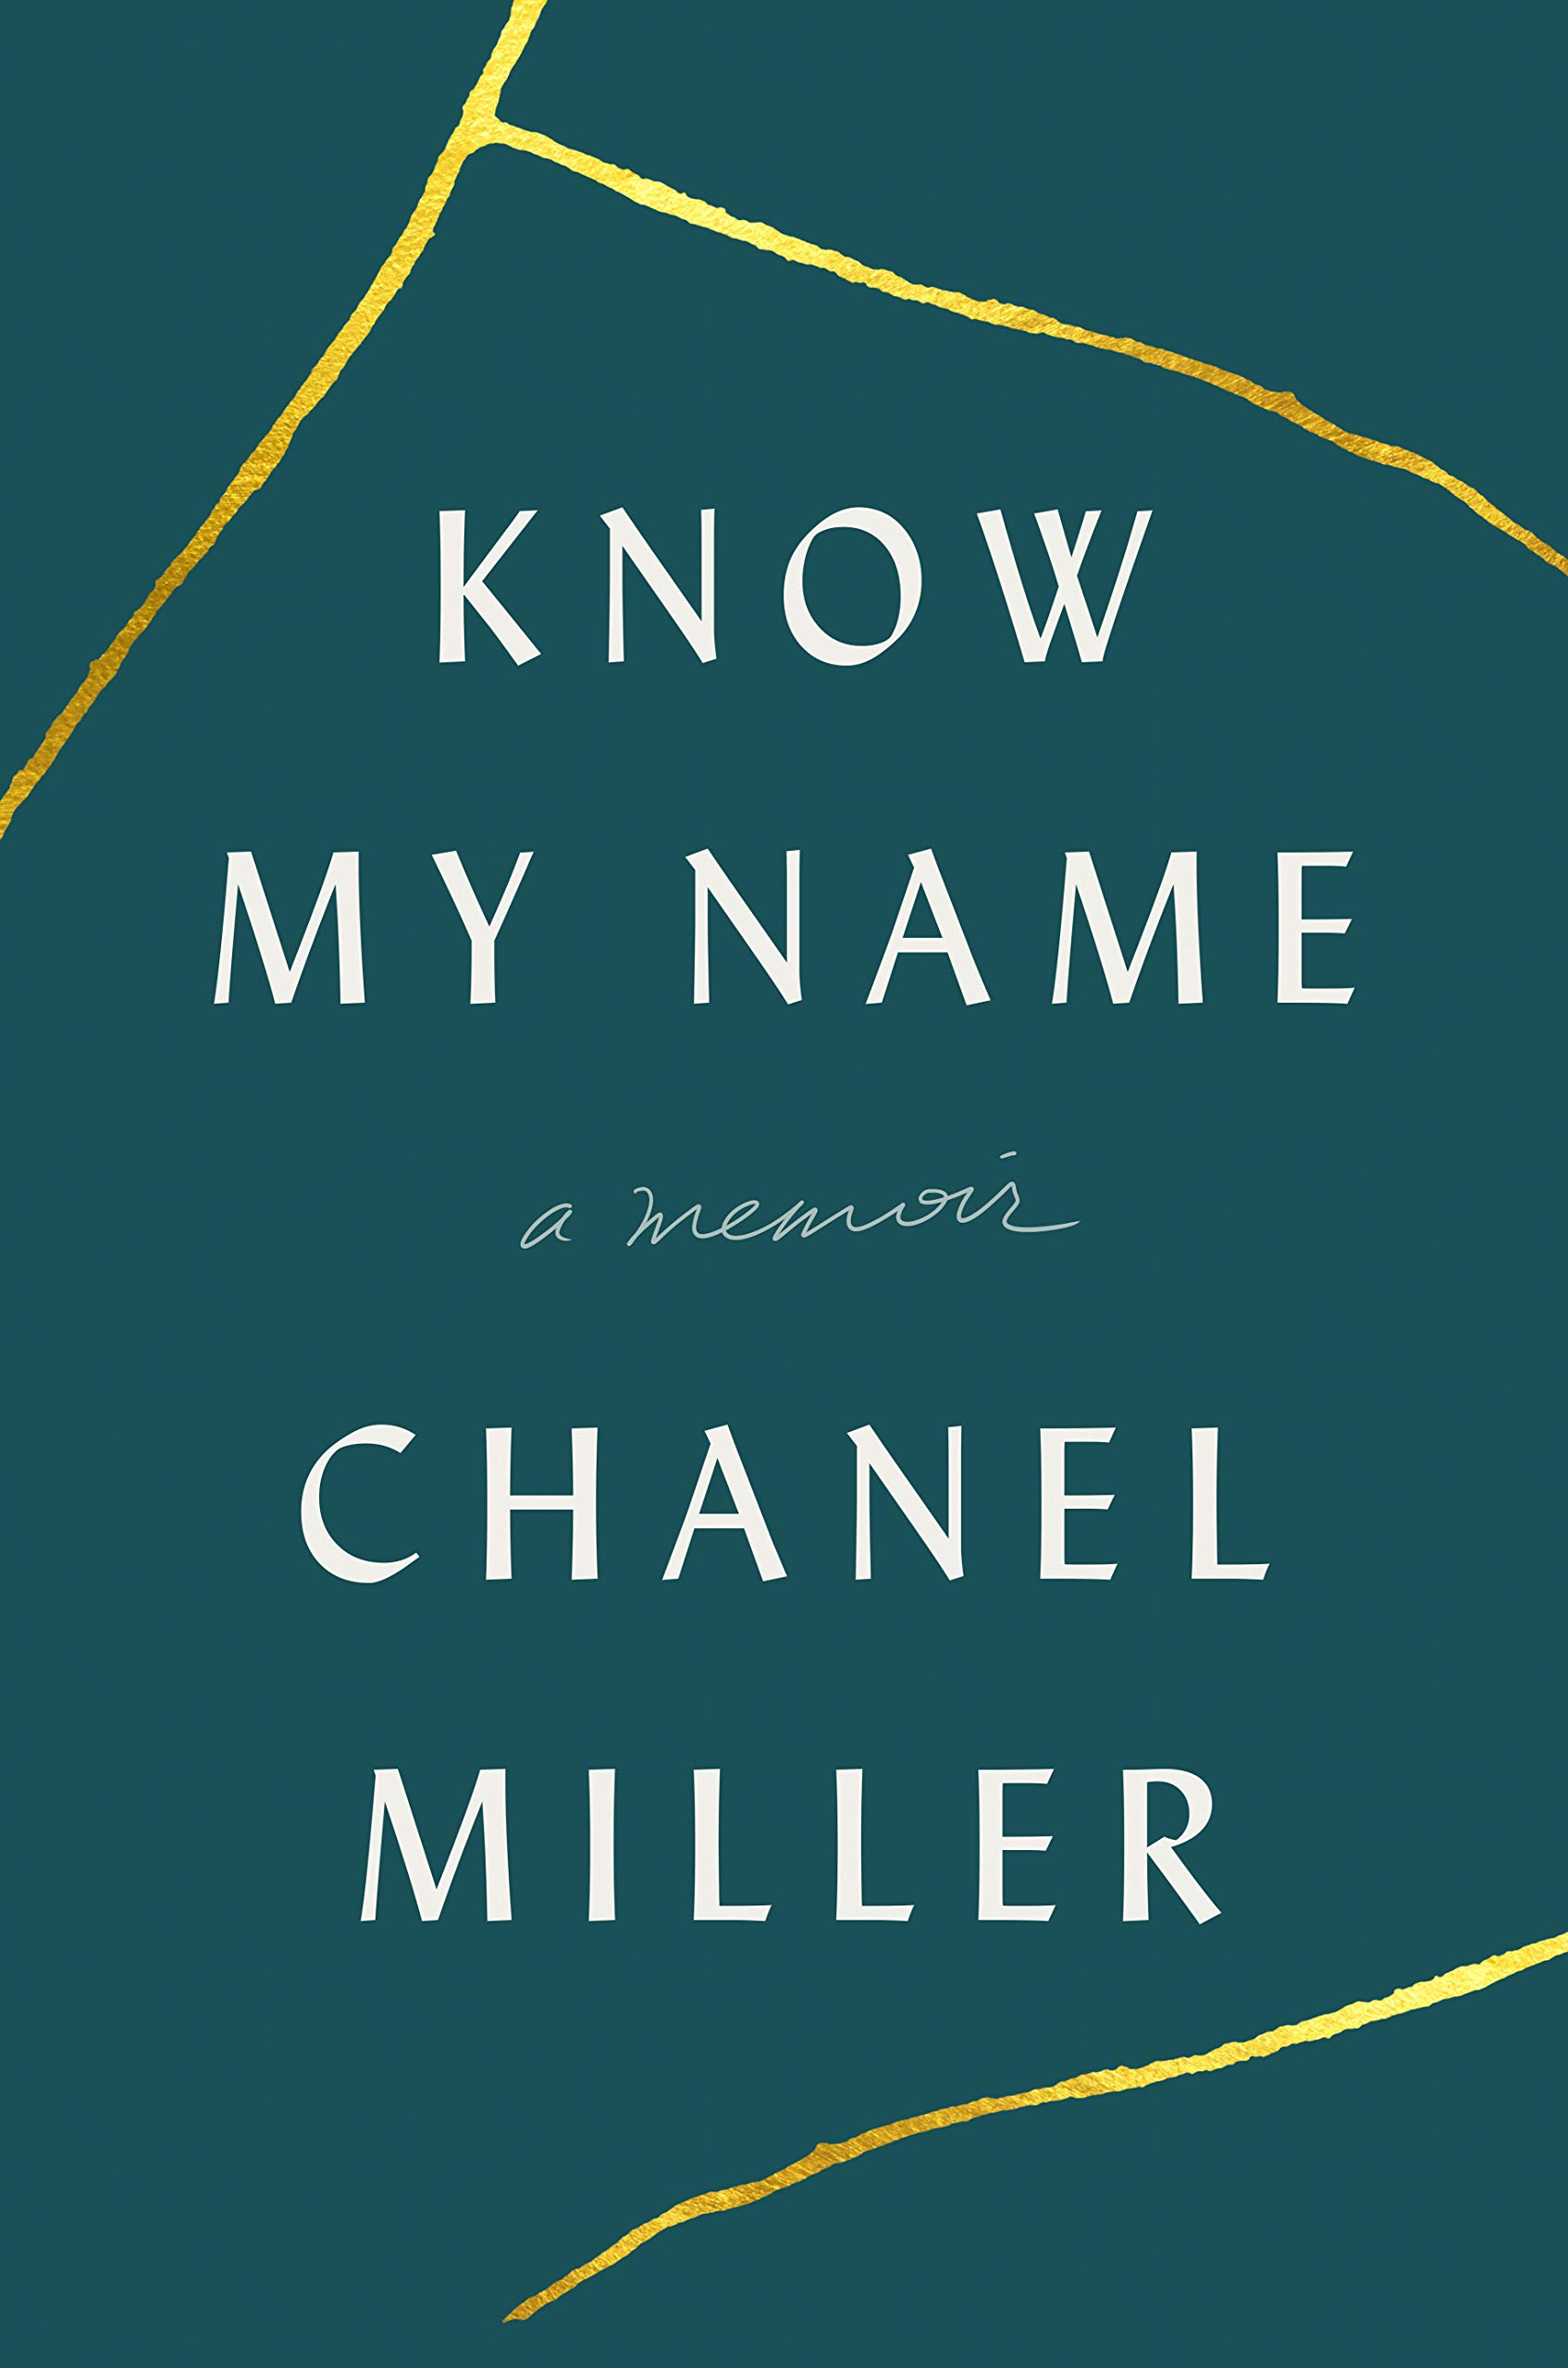 Image result for know my name